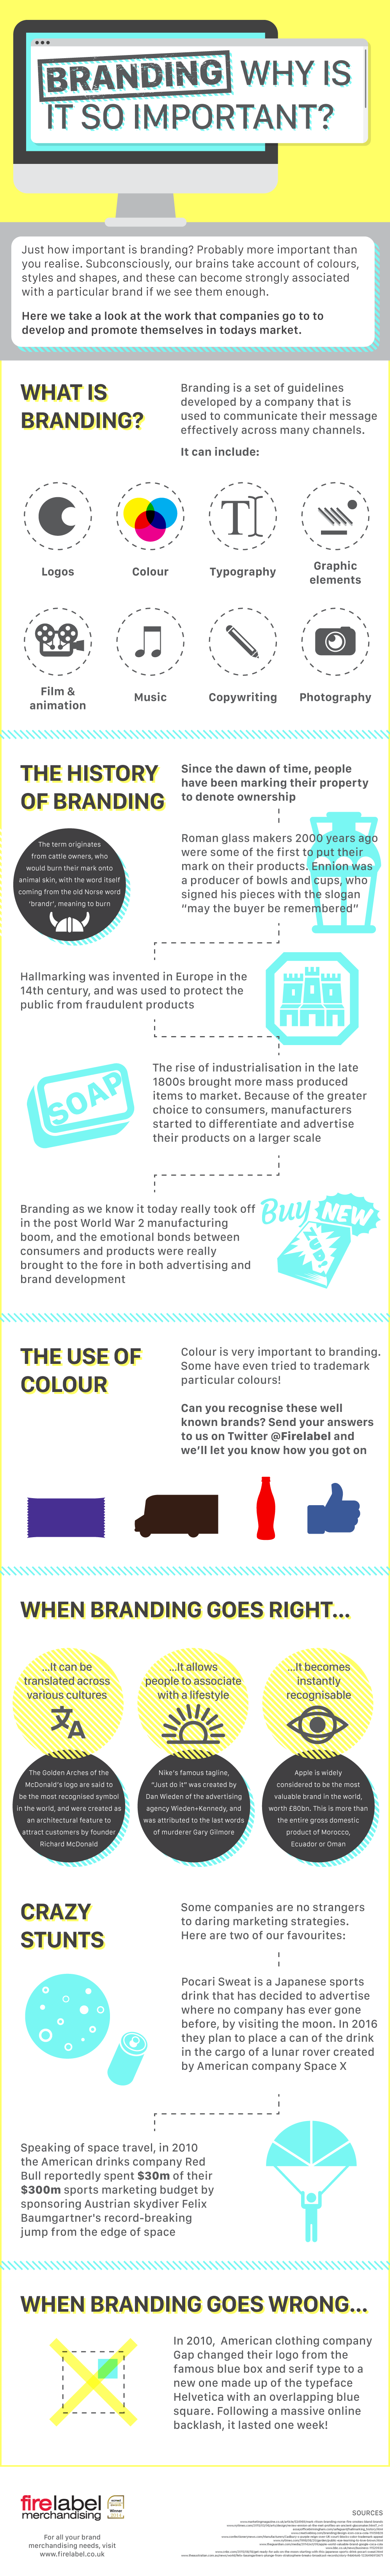 Branding: Why Is It So Important?